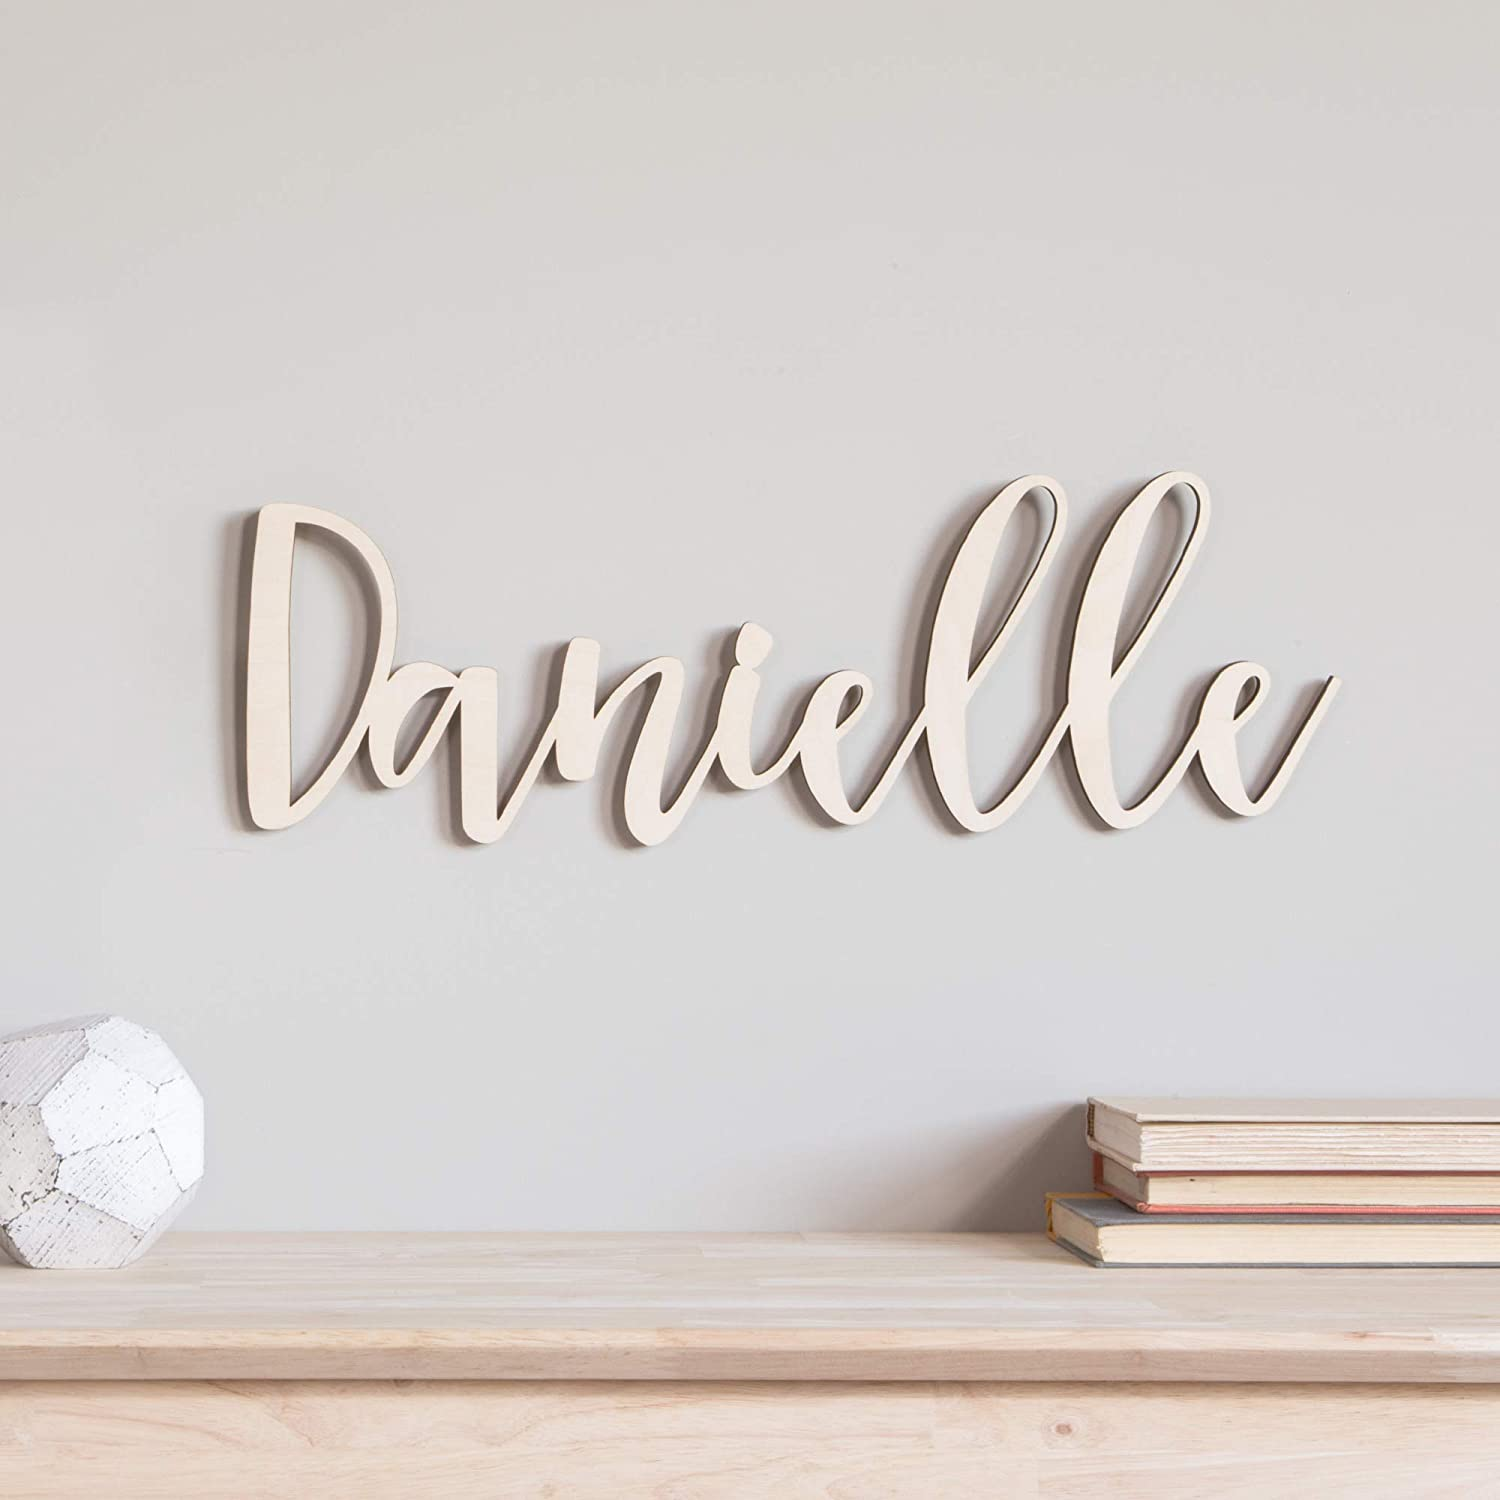 Cursive Letters For Wall Decor from images-na.ssl-images-amazon.com